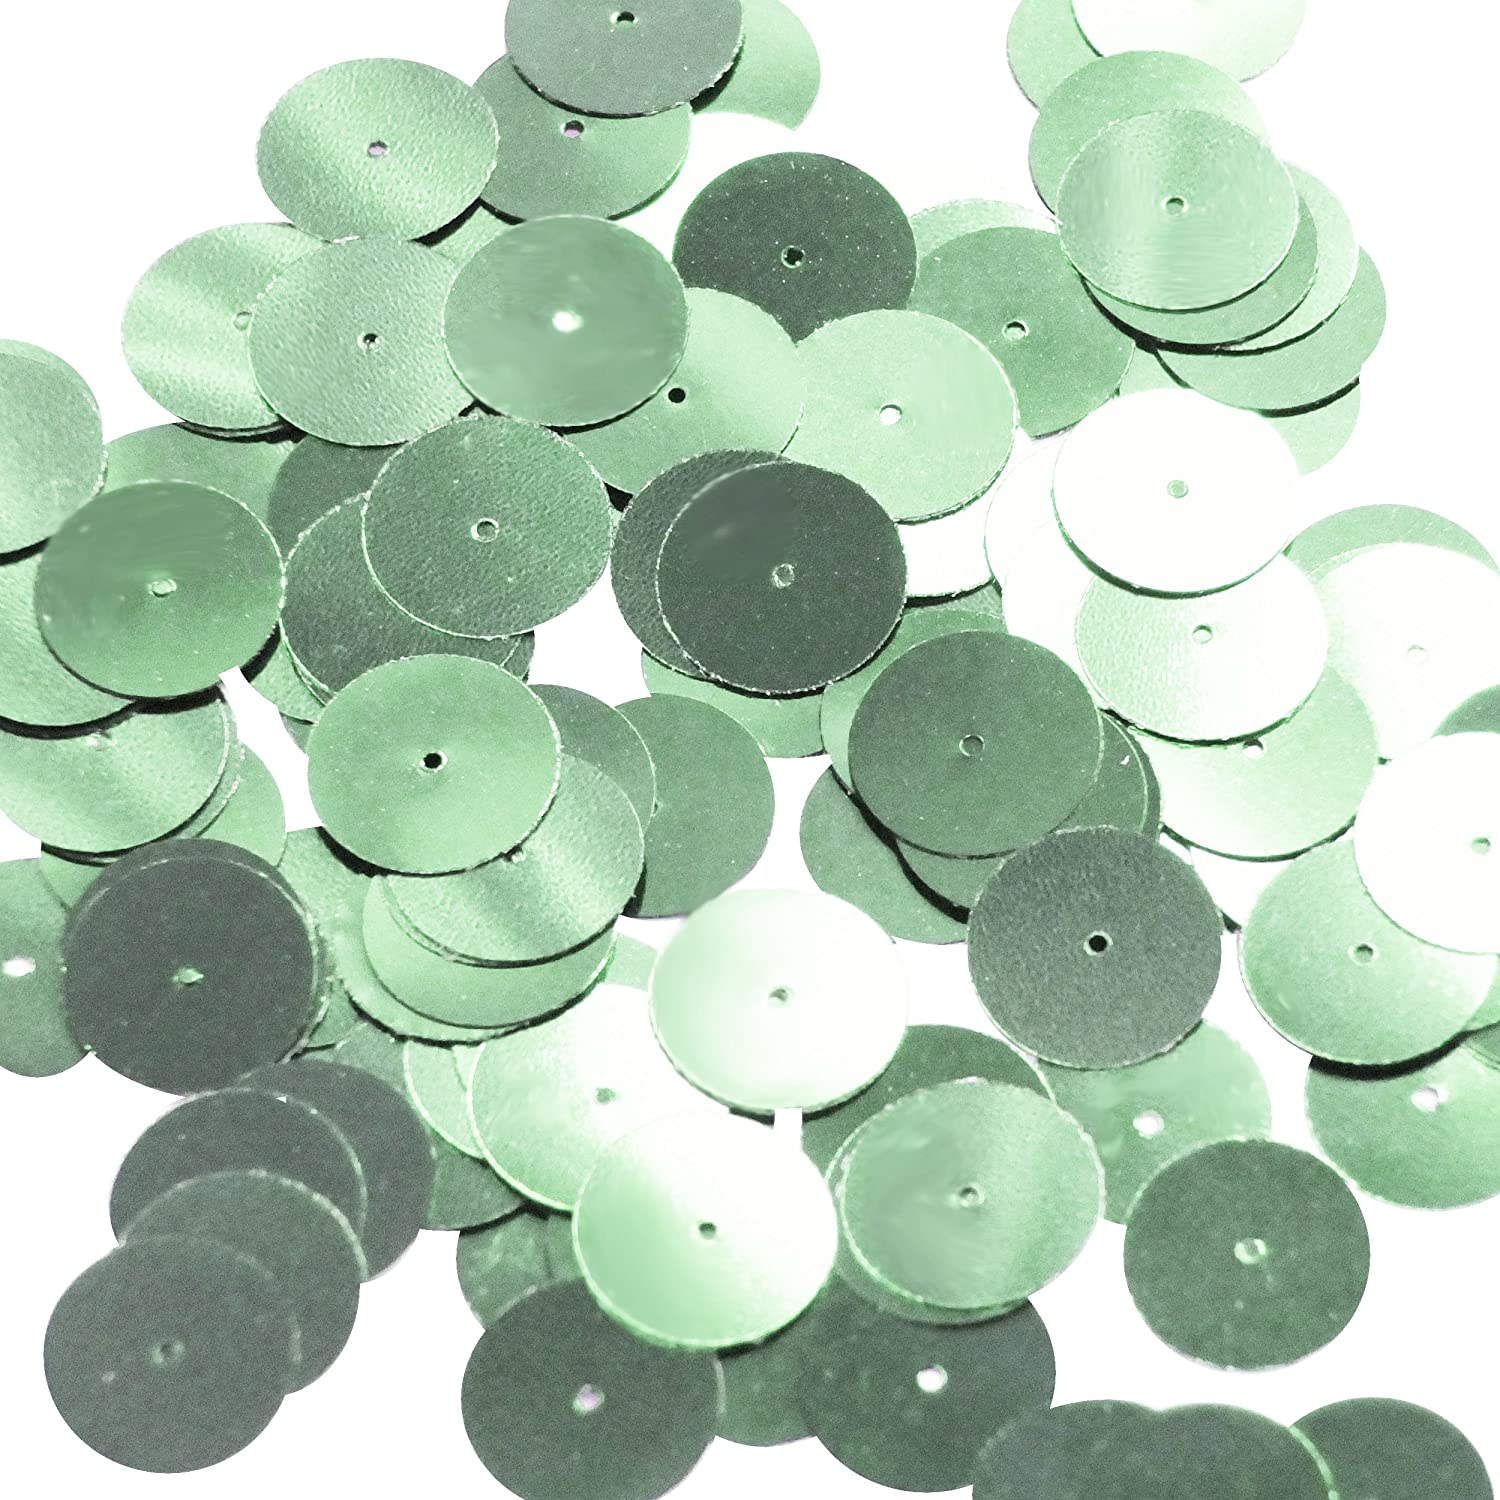 Round Sequin 15mm Pale Green Metallic Couture Paillettes